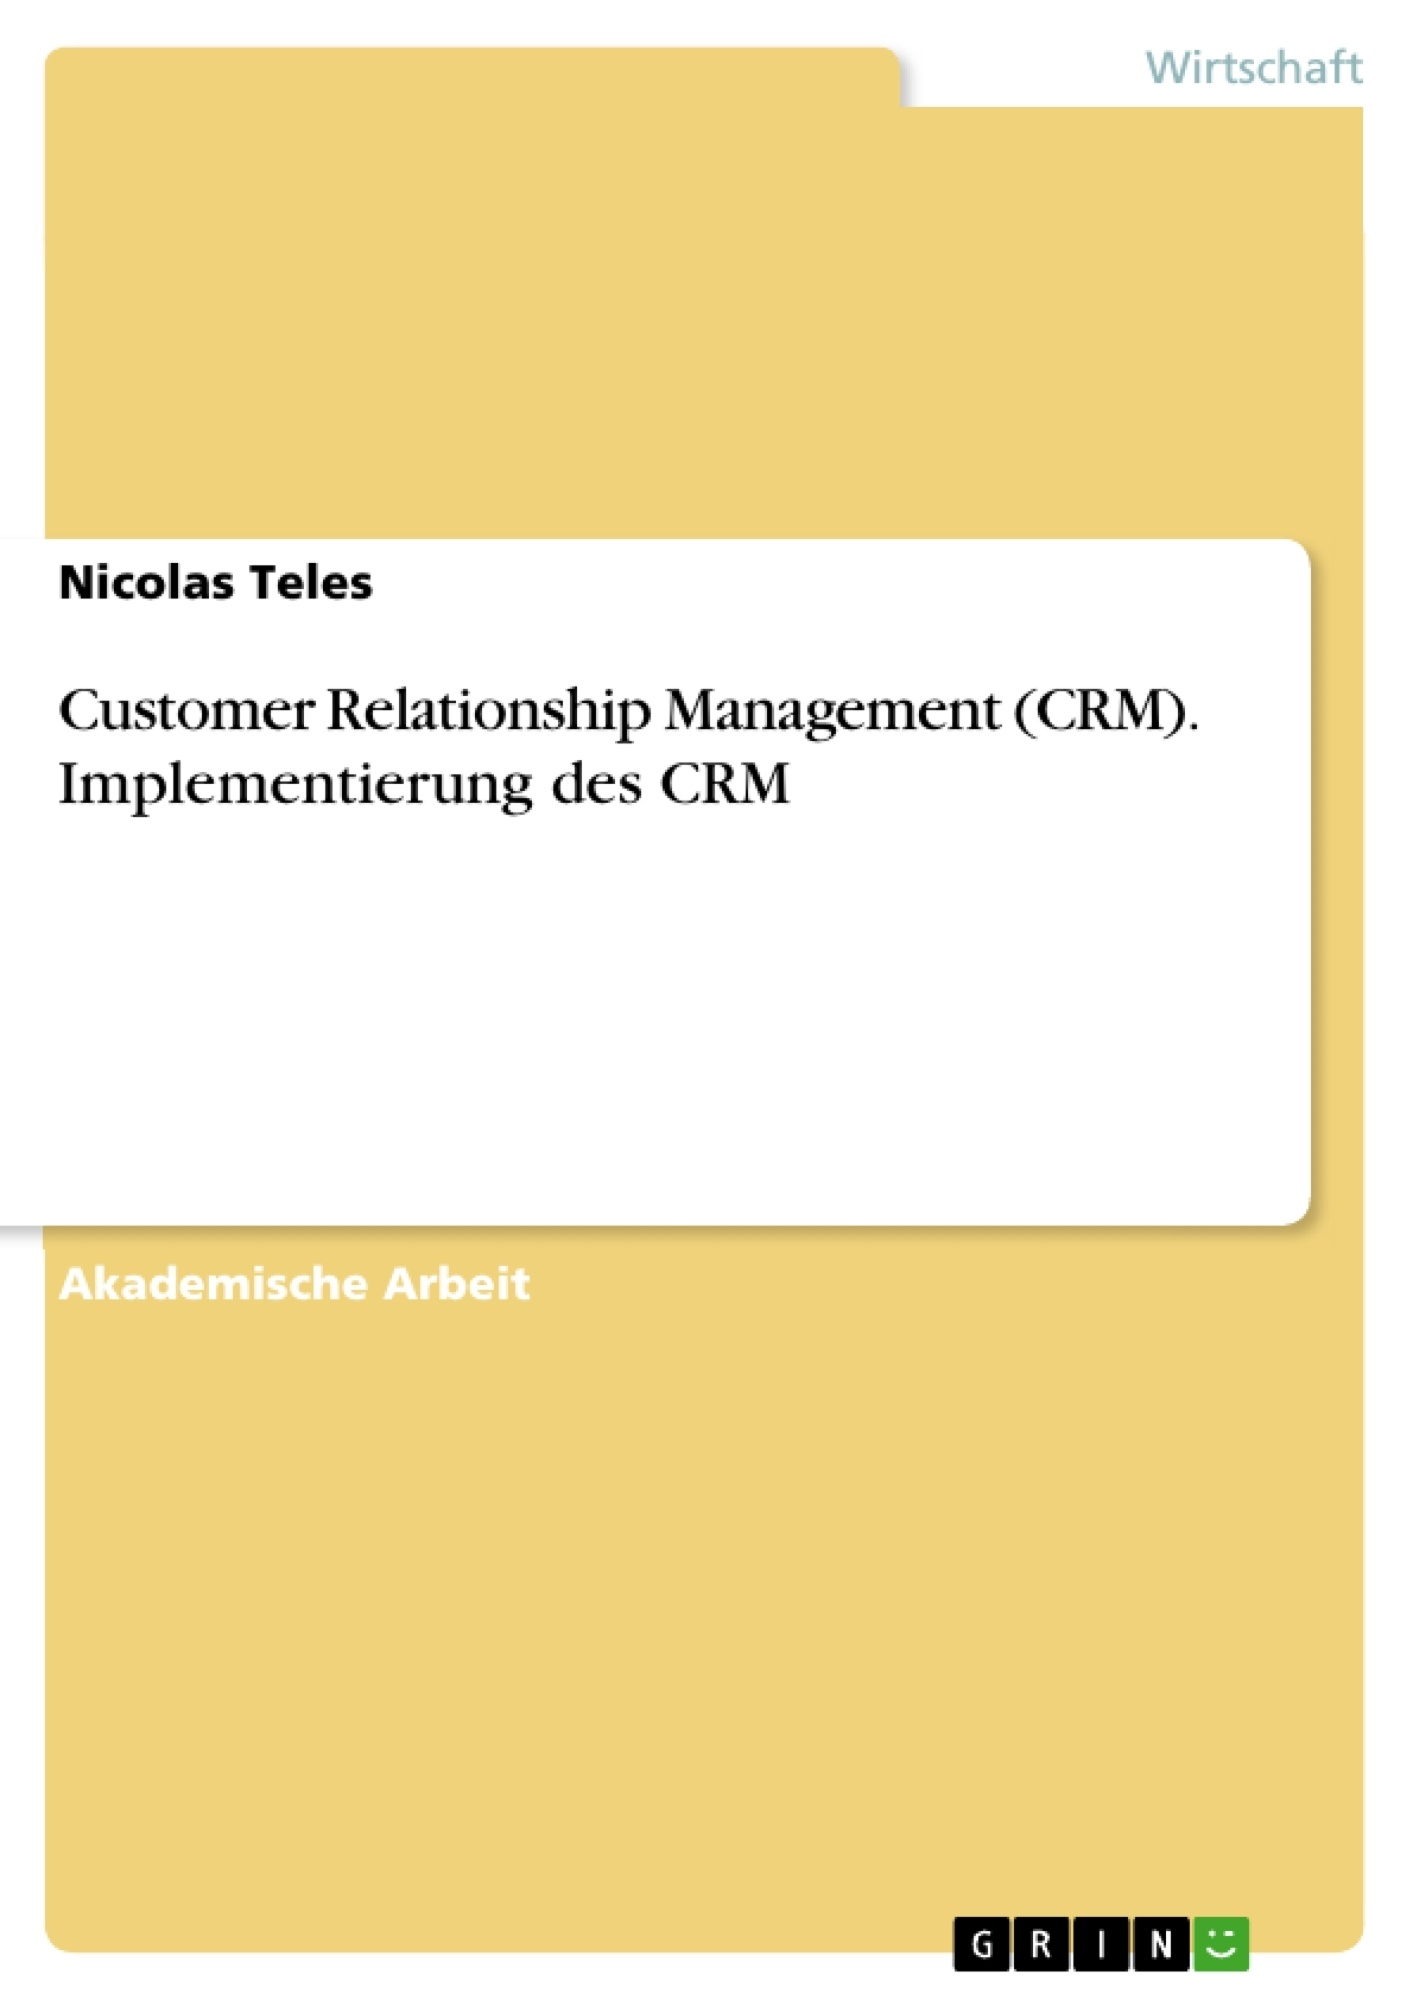 Titel: Customer Relationship Management (CRM). Implementierung des CRM